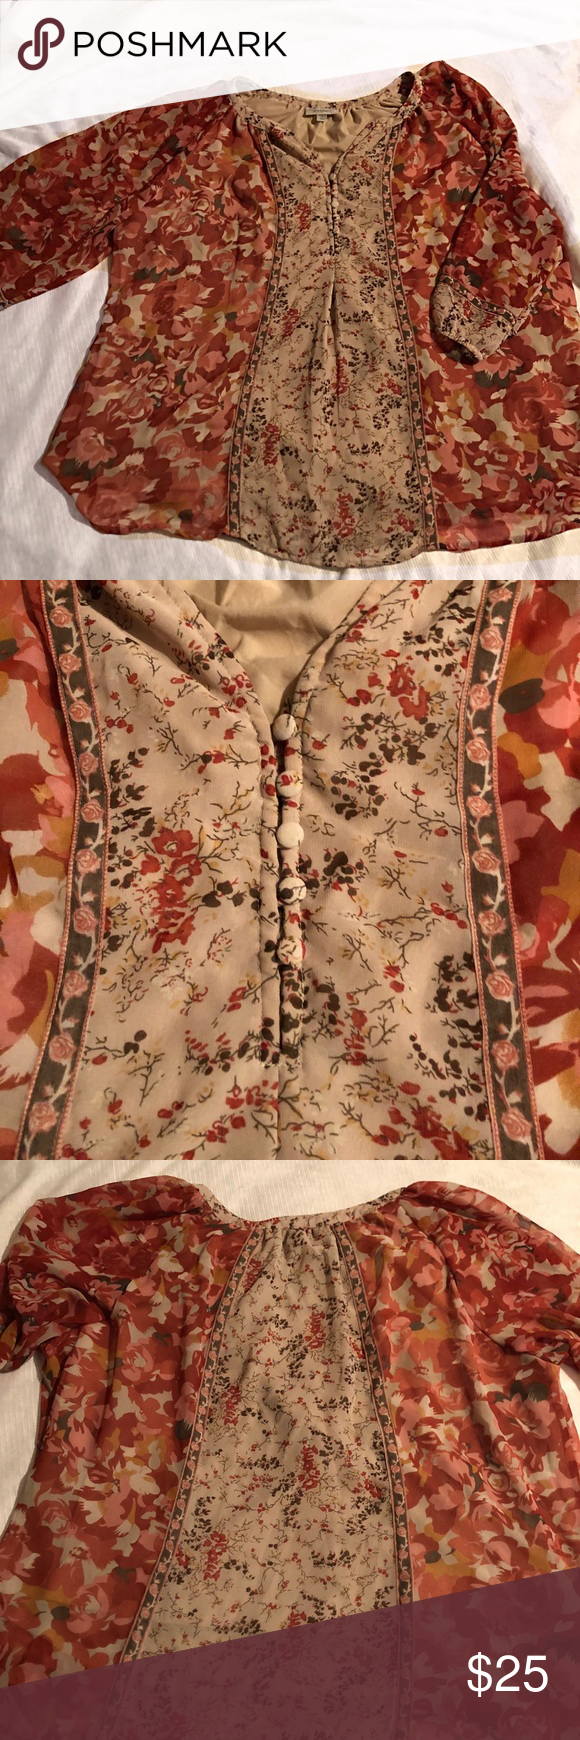 Neutral colored floral print Dressbarn top Neutral tan background highlights a beautiful mauve and red floral print. This top is full of details from the 5 decorative buttons to the slight front pin tuck that adds shape. Flowy and lightweight feel. Lined. EUC 3/4 sheer sleeves.   100% polyester Dress Barn Tops Blouses